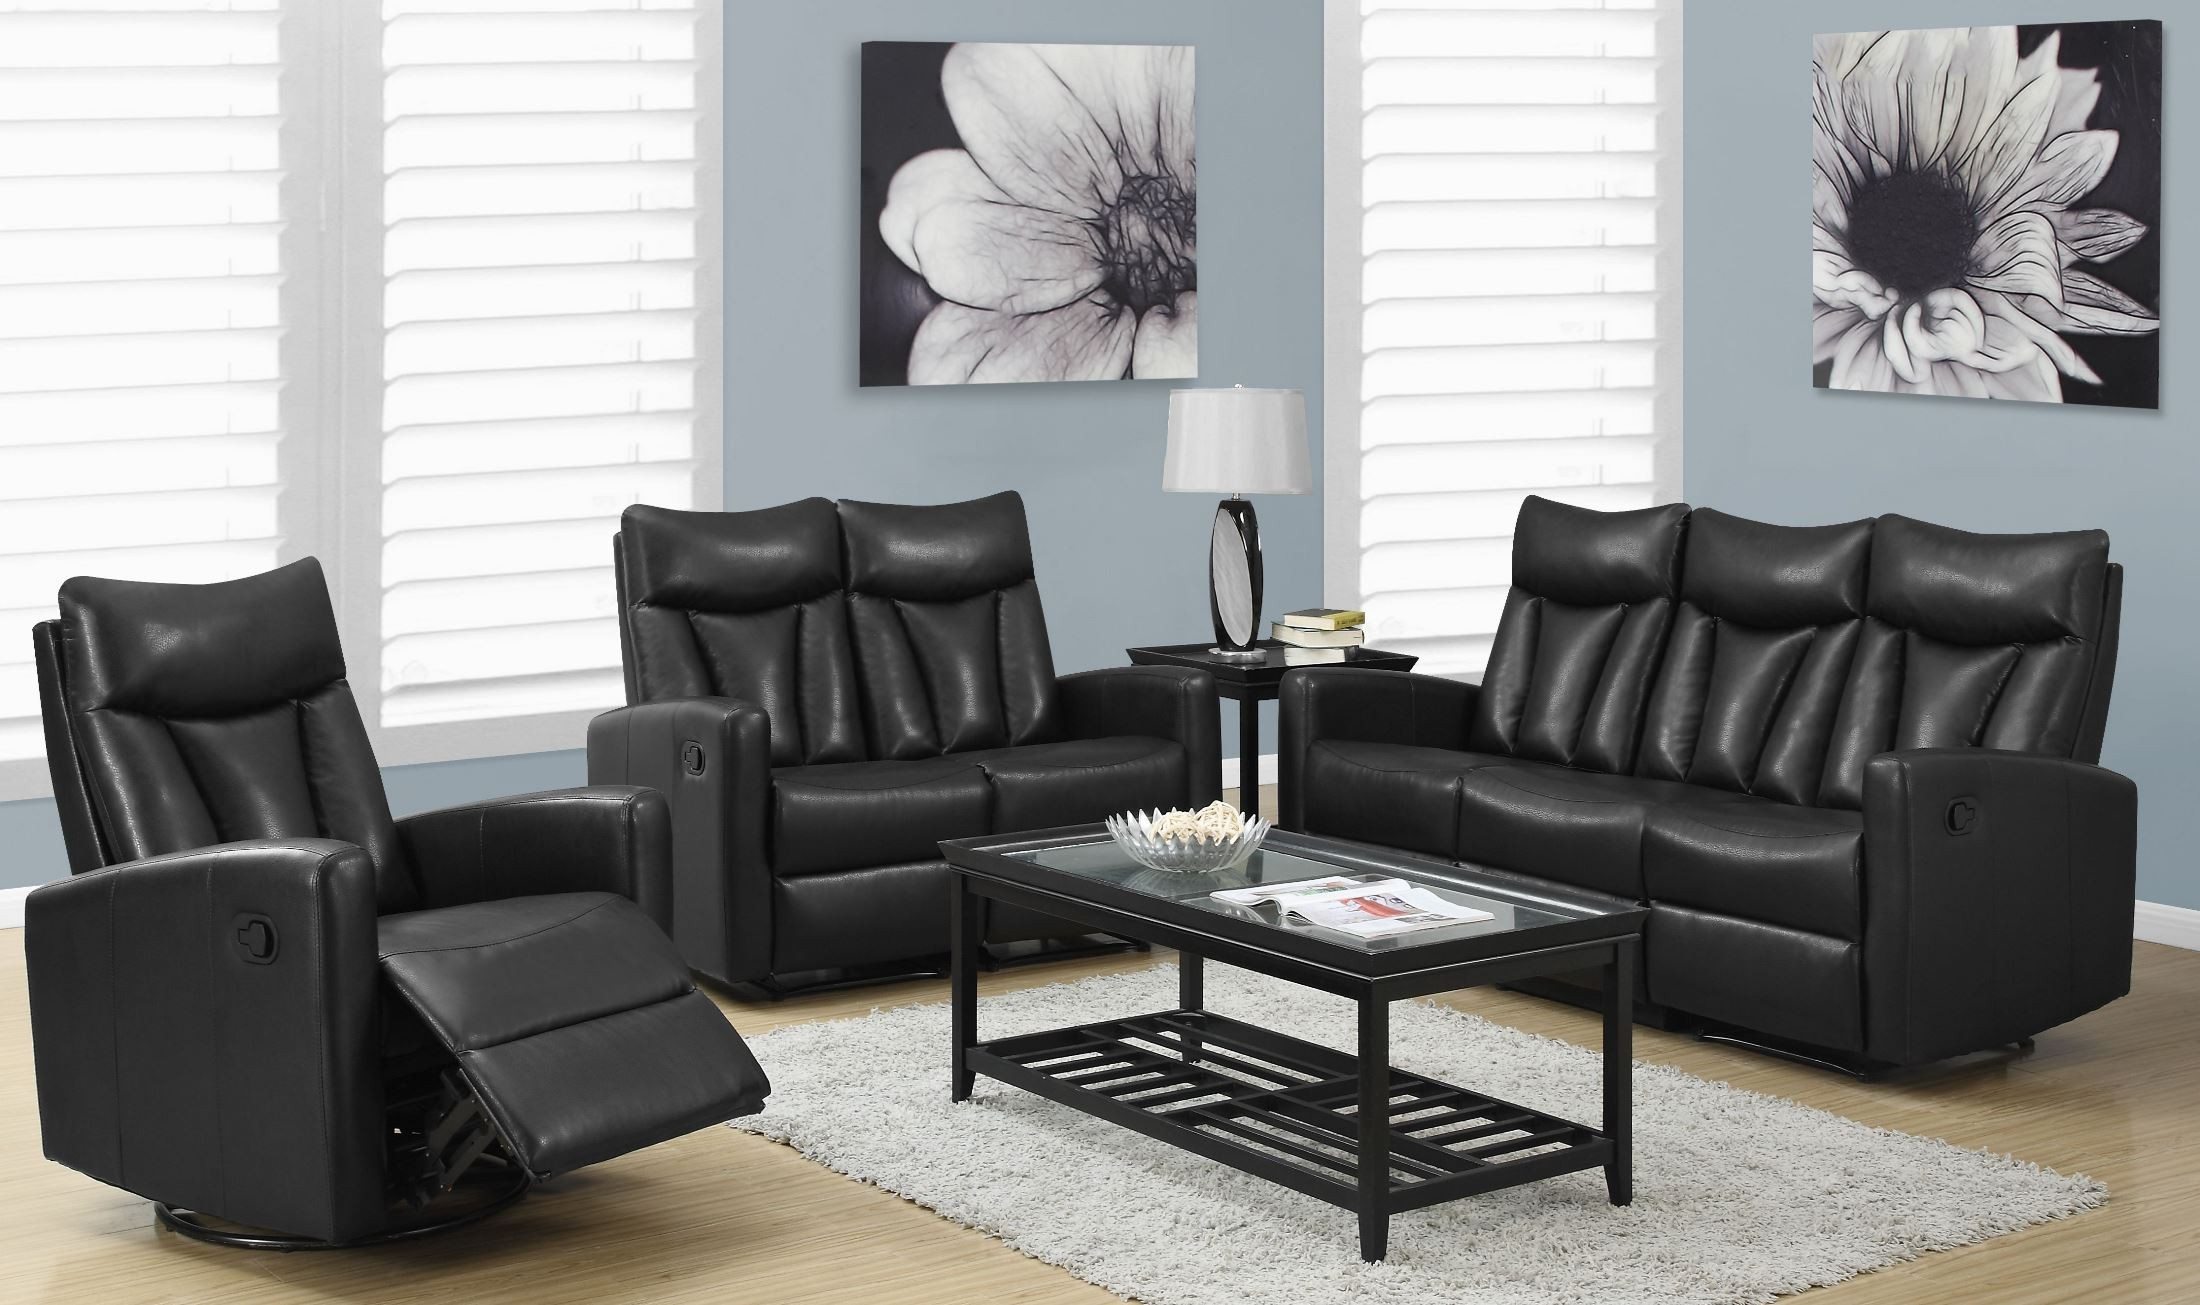 87bk 3 black bonded leather reclining living room set 87bk 3 monarch. Black Bedroom Furniture Sets. Home Design Ideas